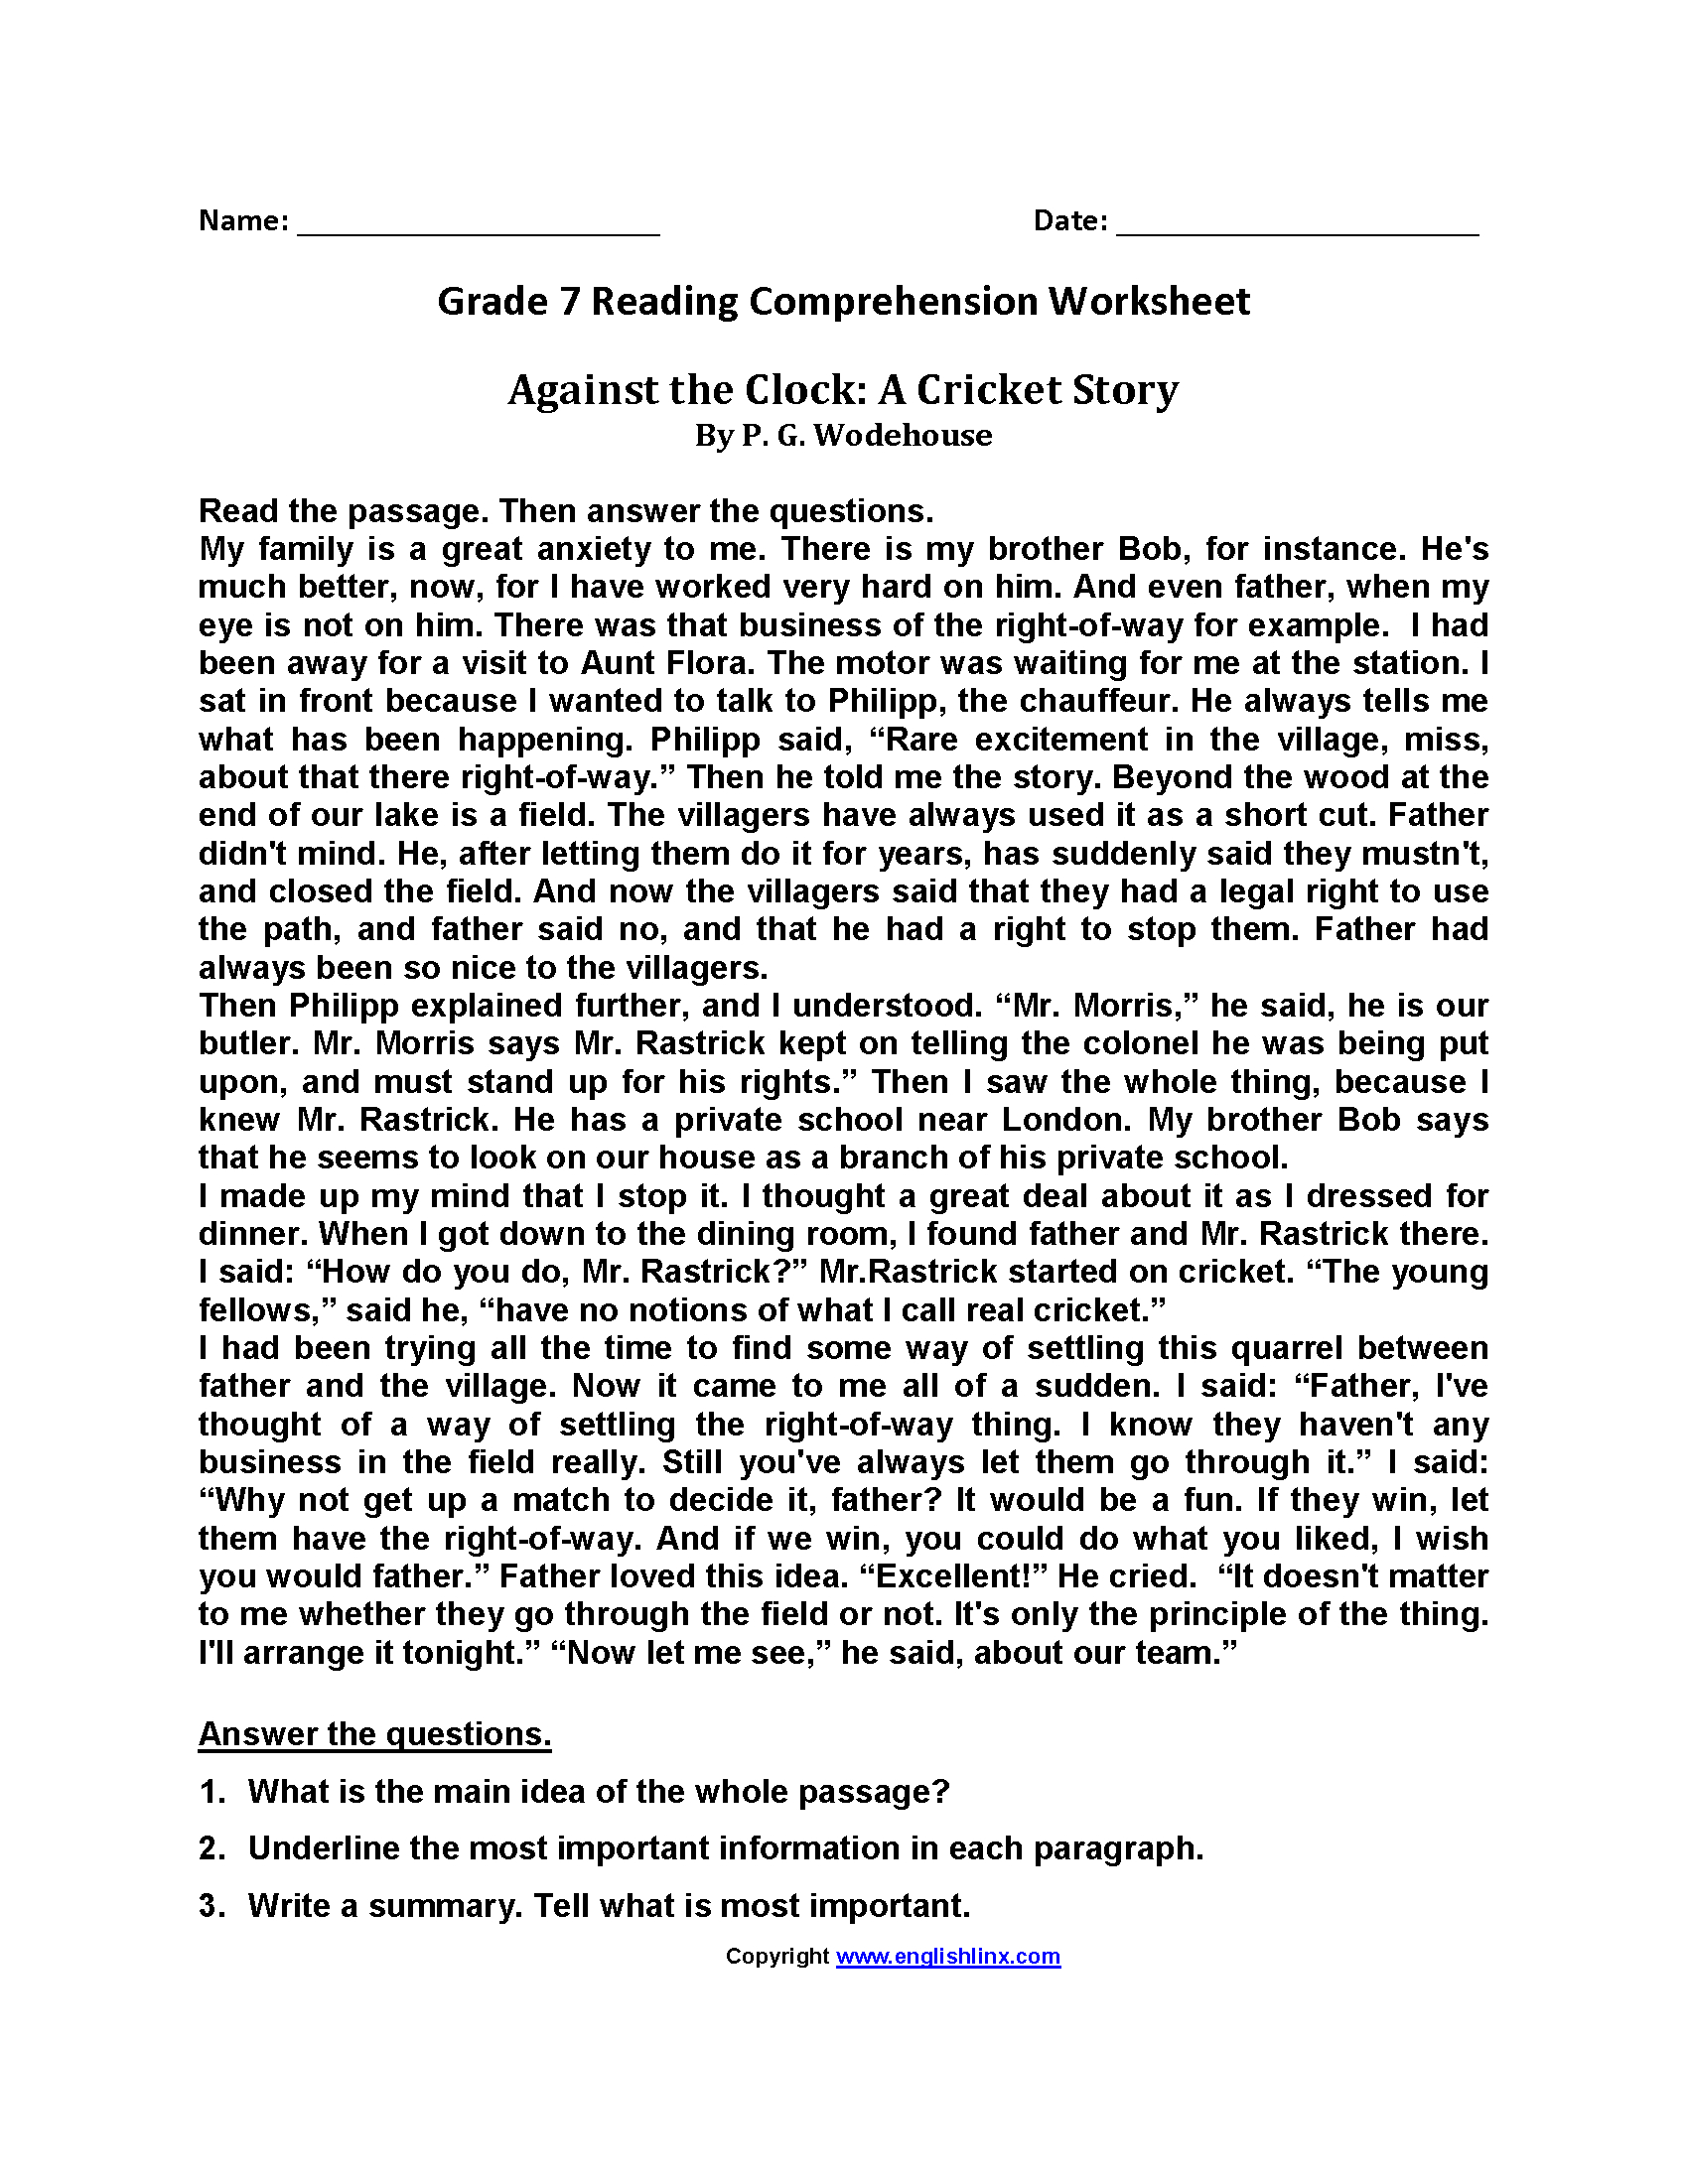 Reading Comprehension Worksheets 7th Grade